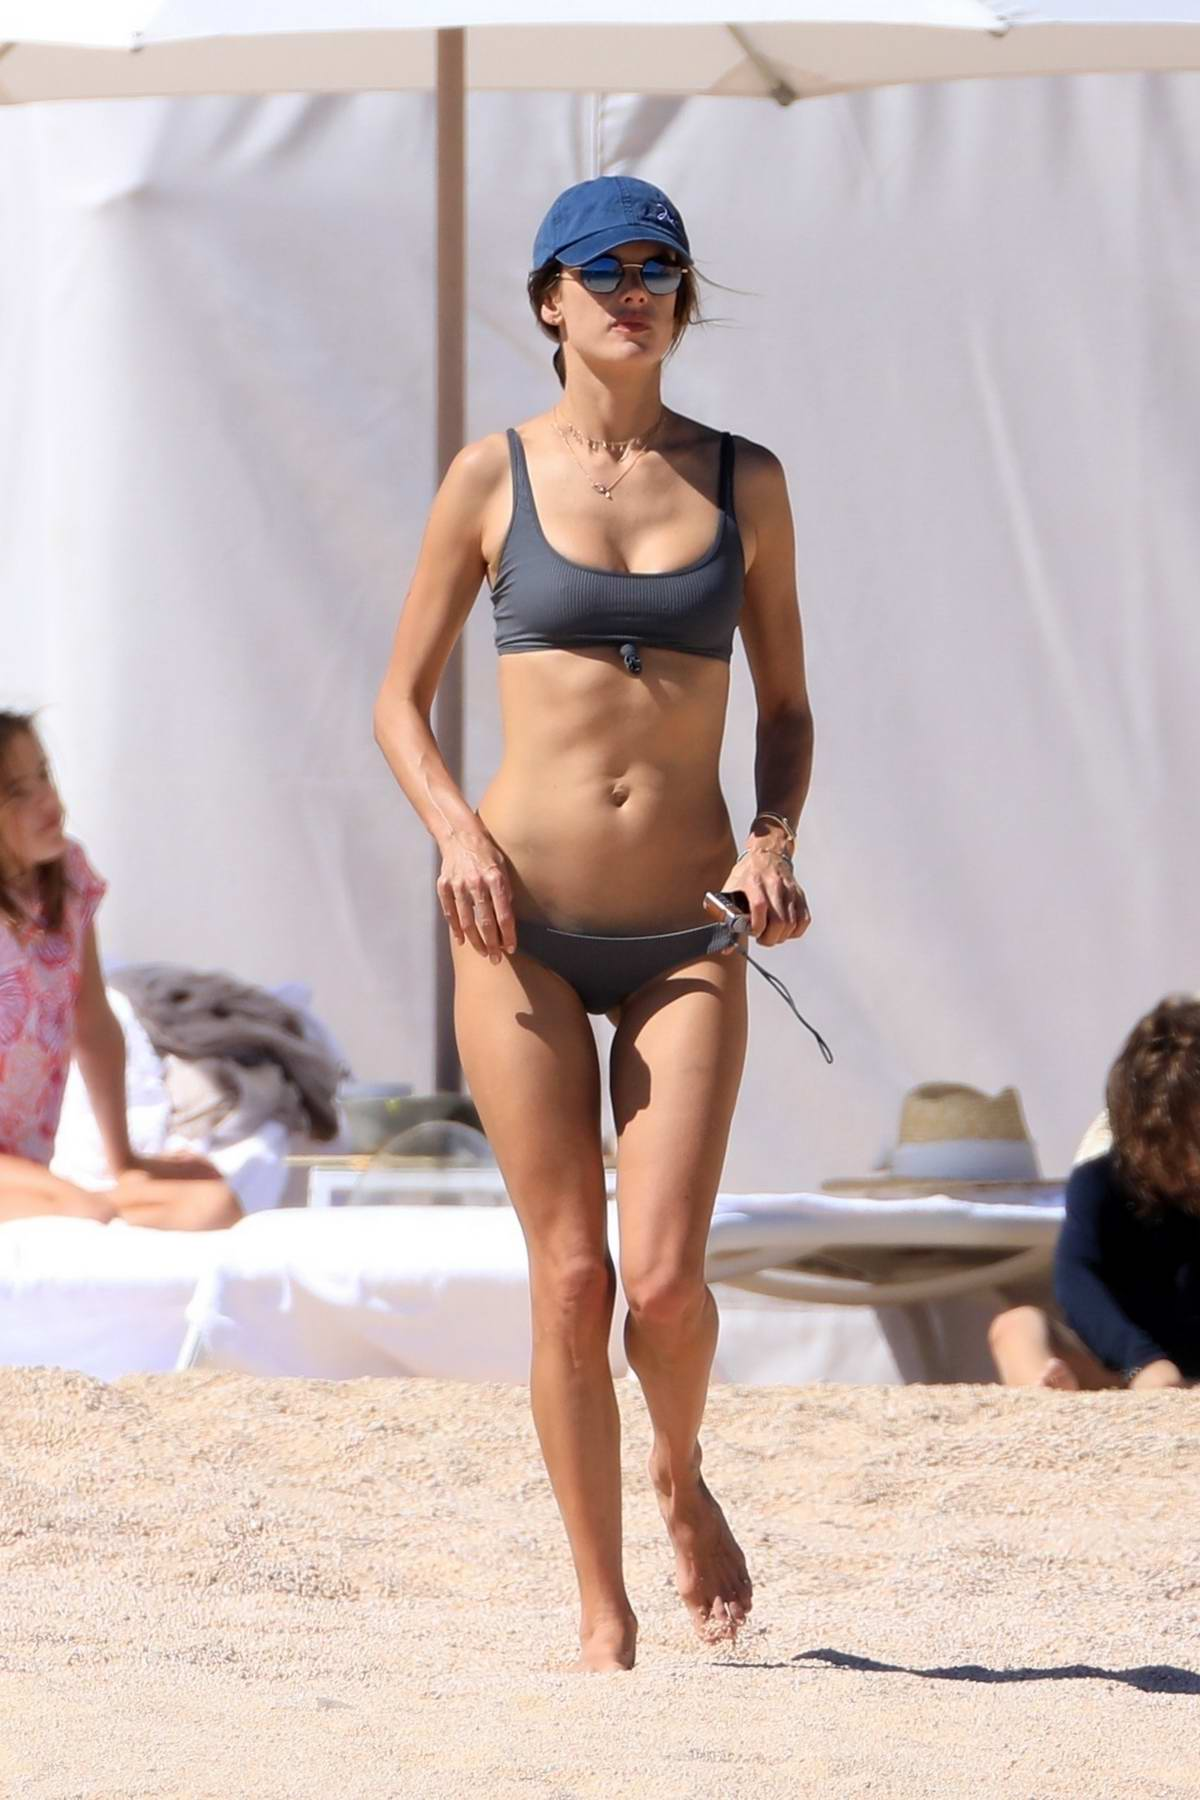 Alessandra Ambrosio shows off her bikini body as she vacations with family in Cabo San Luca, Mexico